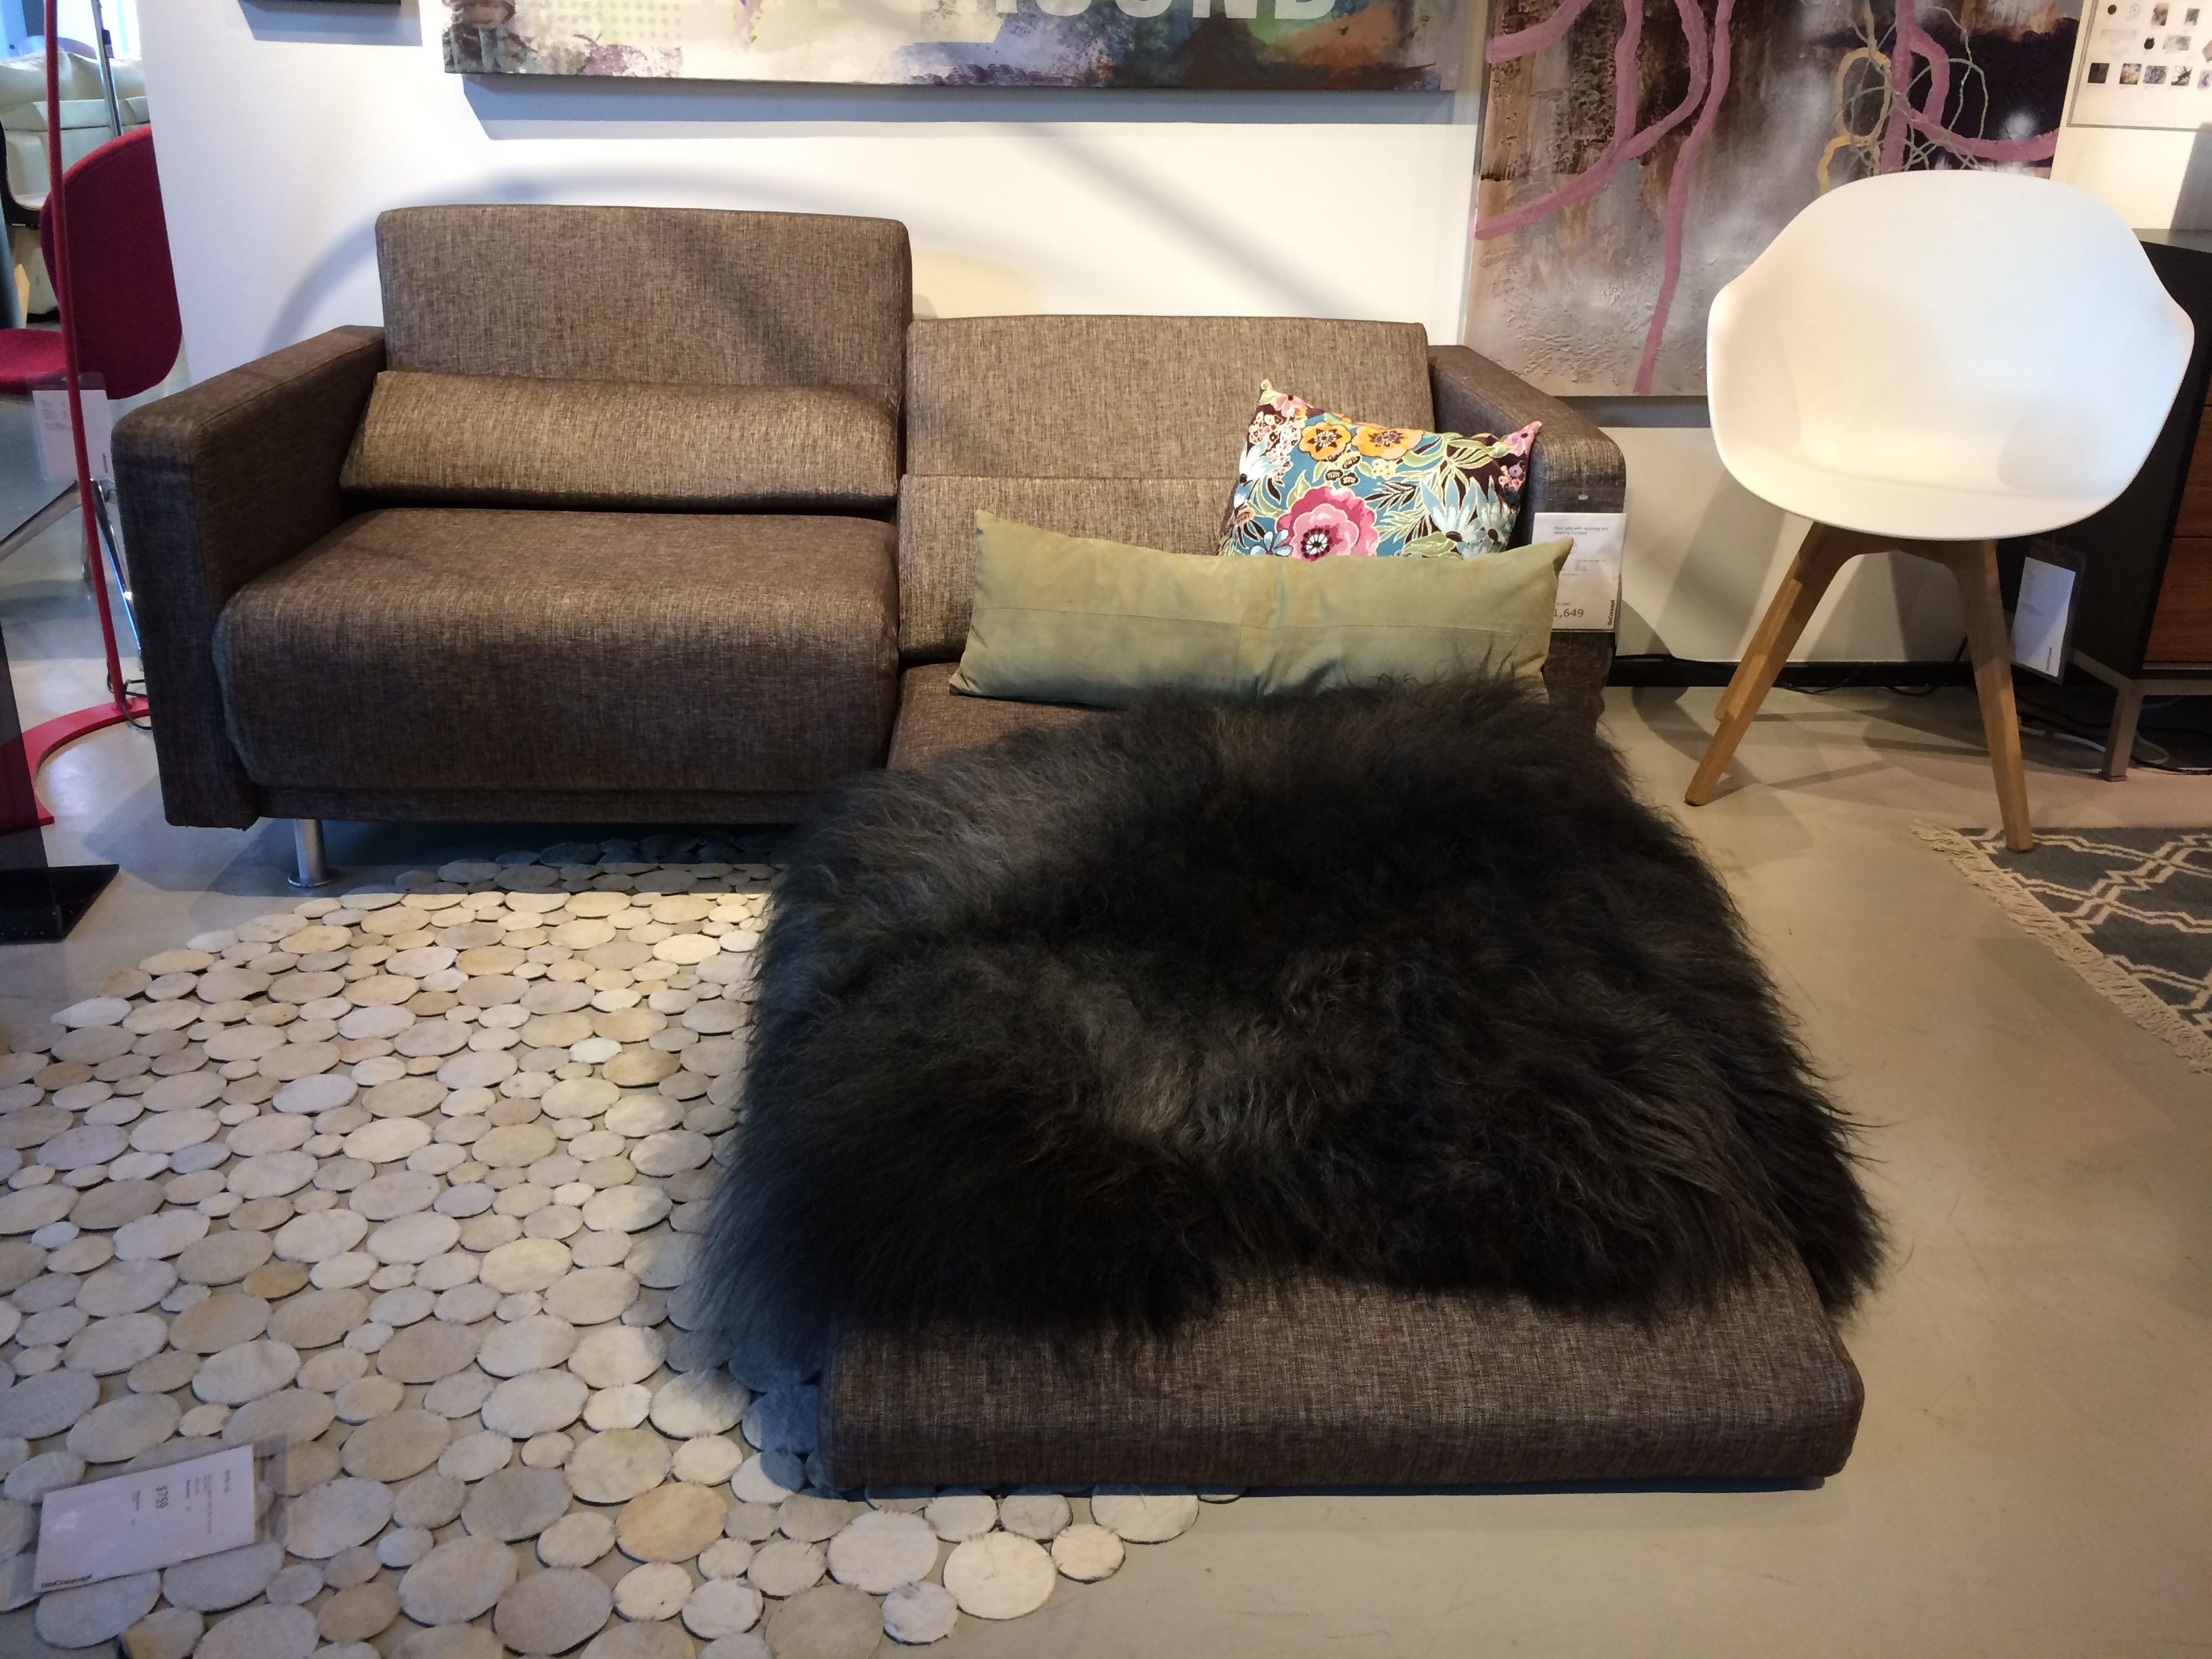 e relax on our melo sofa with reclining and sleeping function boconcept with sofa relax